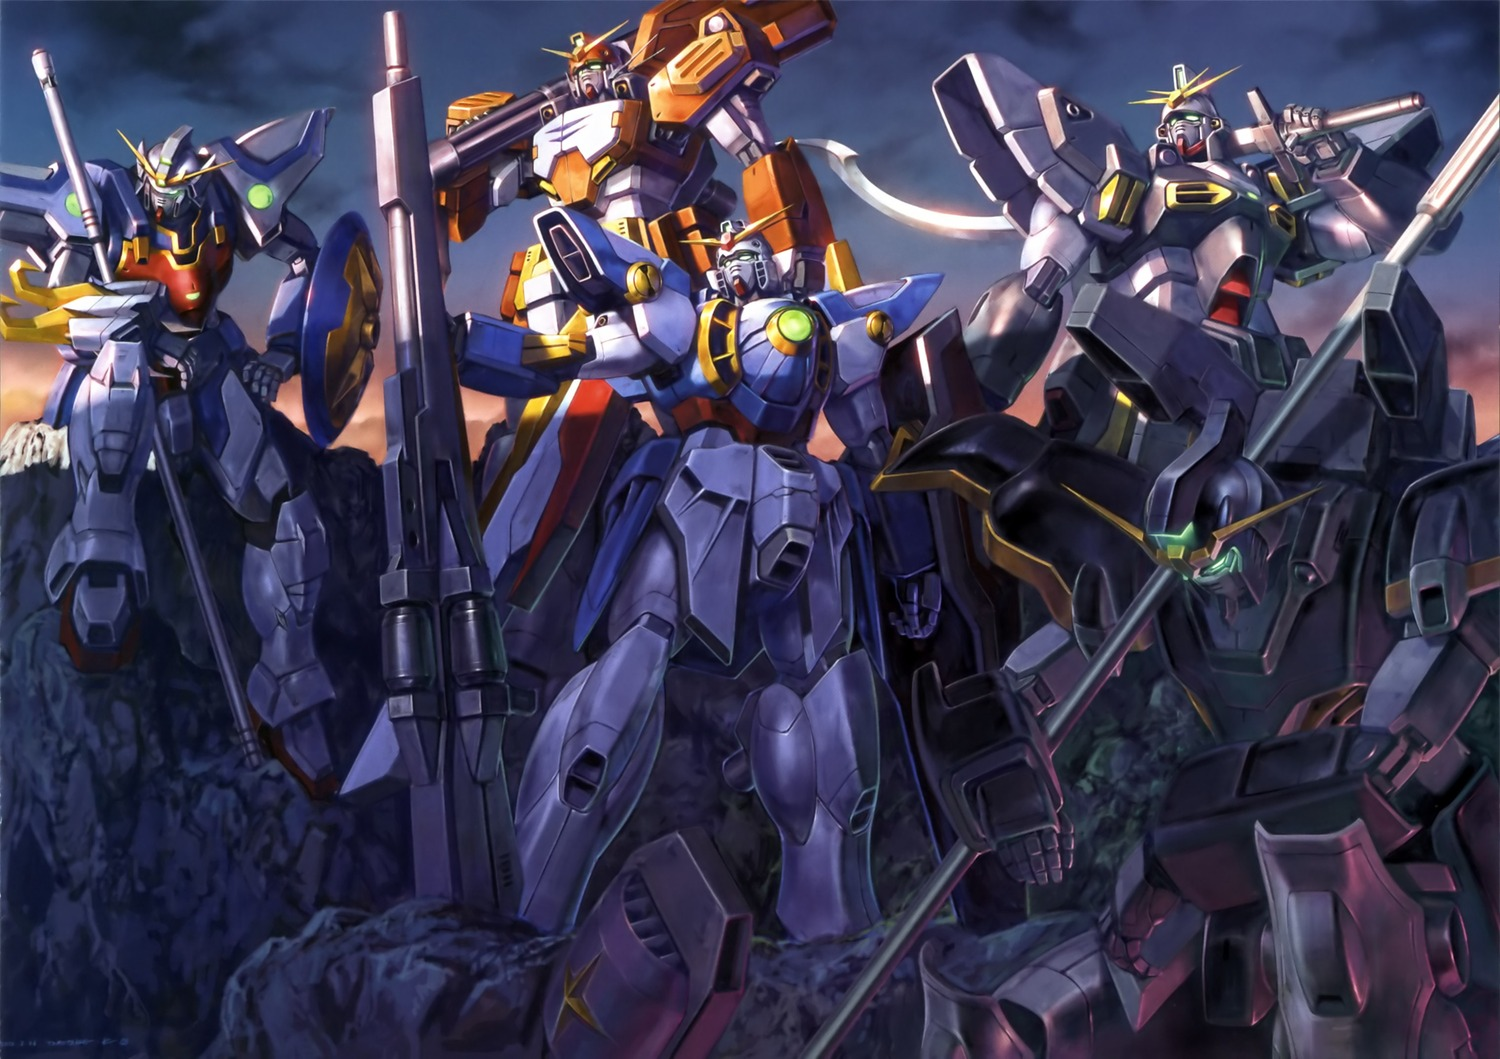 Wing Gundam Wallpaper - WallpaperSafari